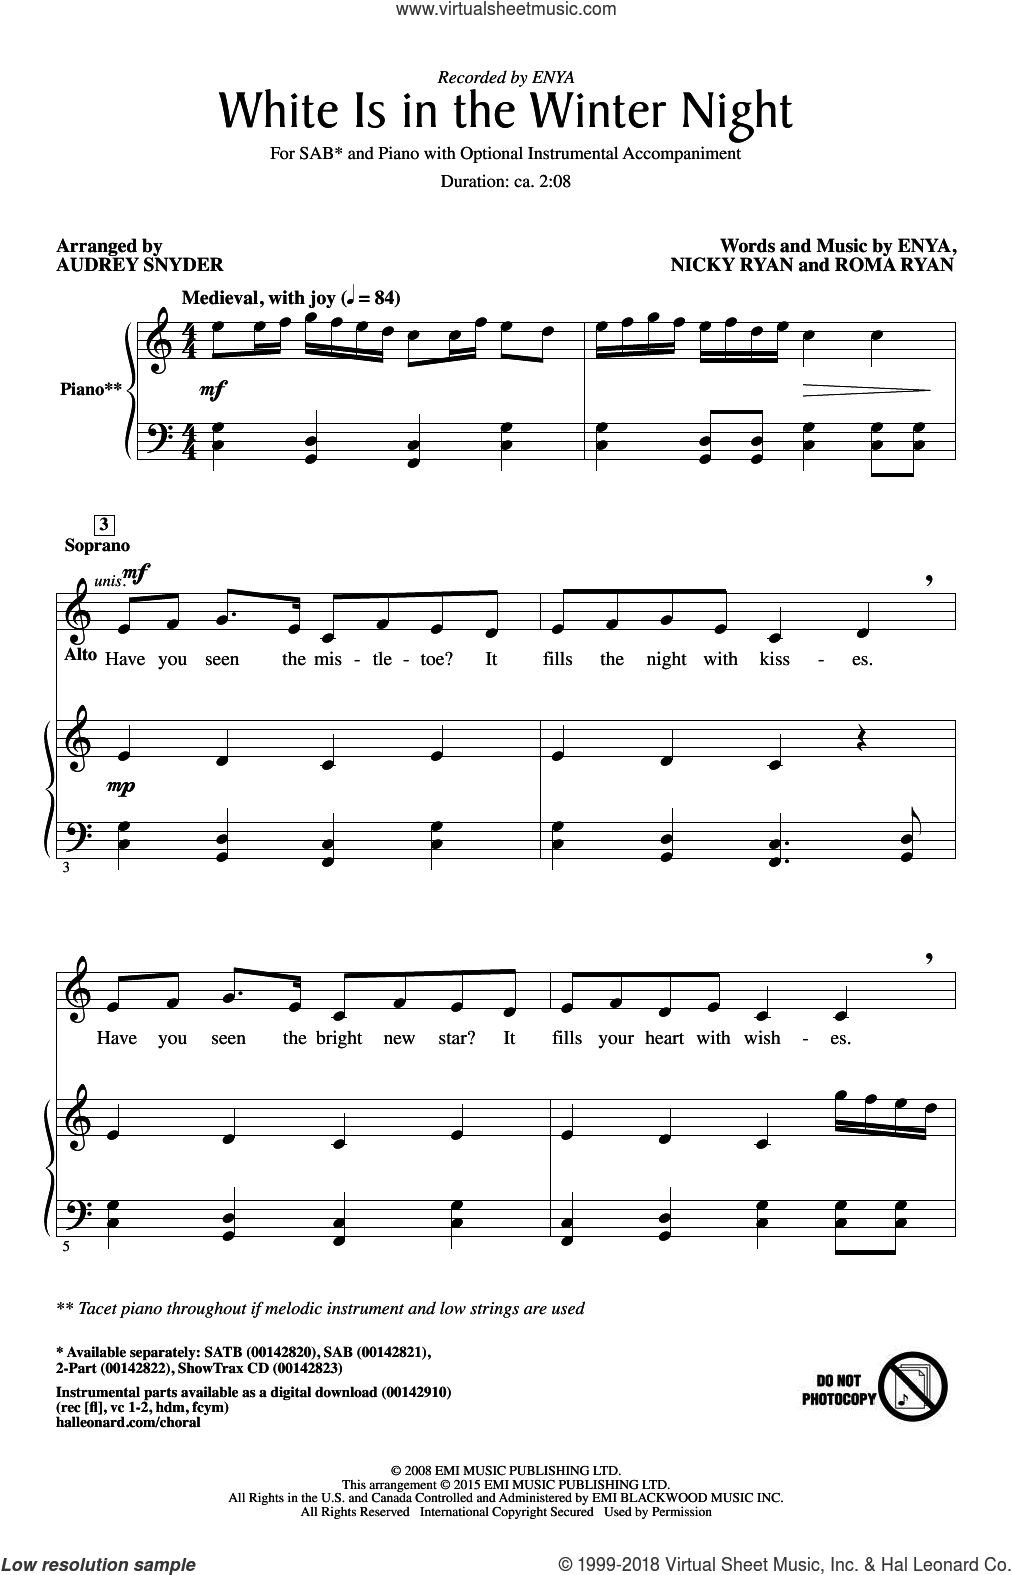 White Is In The Winter Night sheet music for choir (SAB) by Audrey Snyder, Enya, Nicky Ryan and Roma Ryan. Score Image Preview.